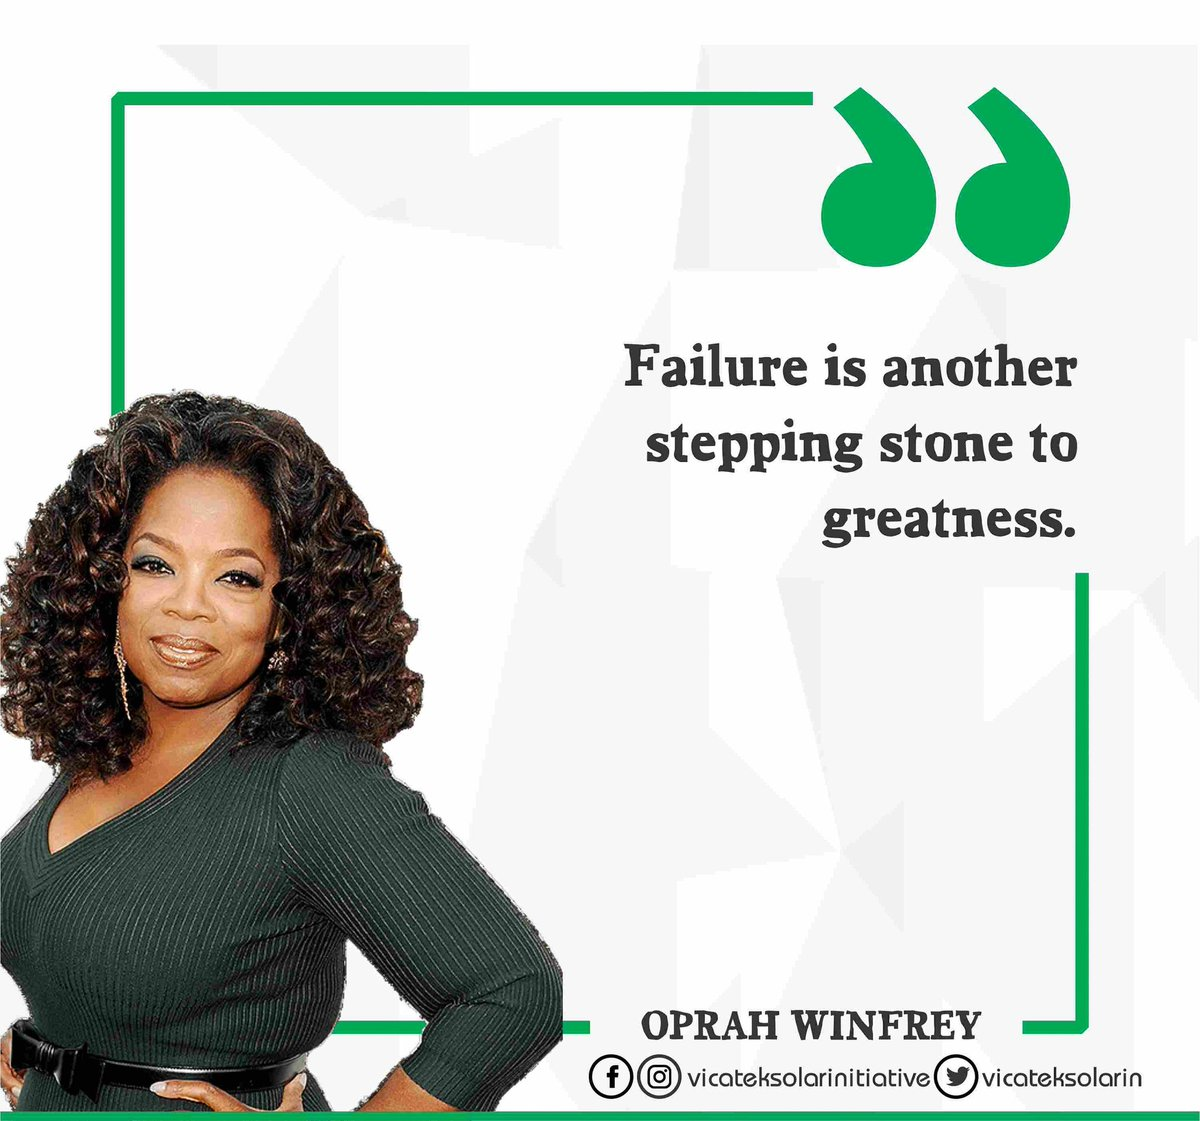 Failure is another stepping stone to greatness - Oprah Winfrey #monday #motivation #mondaymotivation #mondaymood #mondayquote #quotes #quoteoftheday #oprahwinfrey #ifb #socialmedia247c #vicatek #vicatekquote #Nigeria<br>http://pic.twitter.com/bcw2BRhGl2